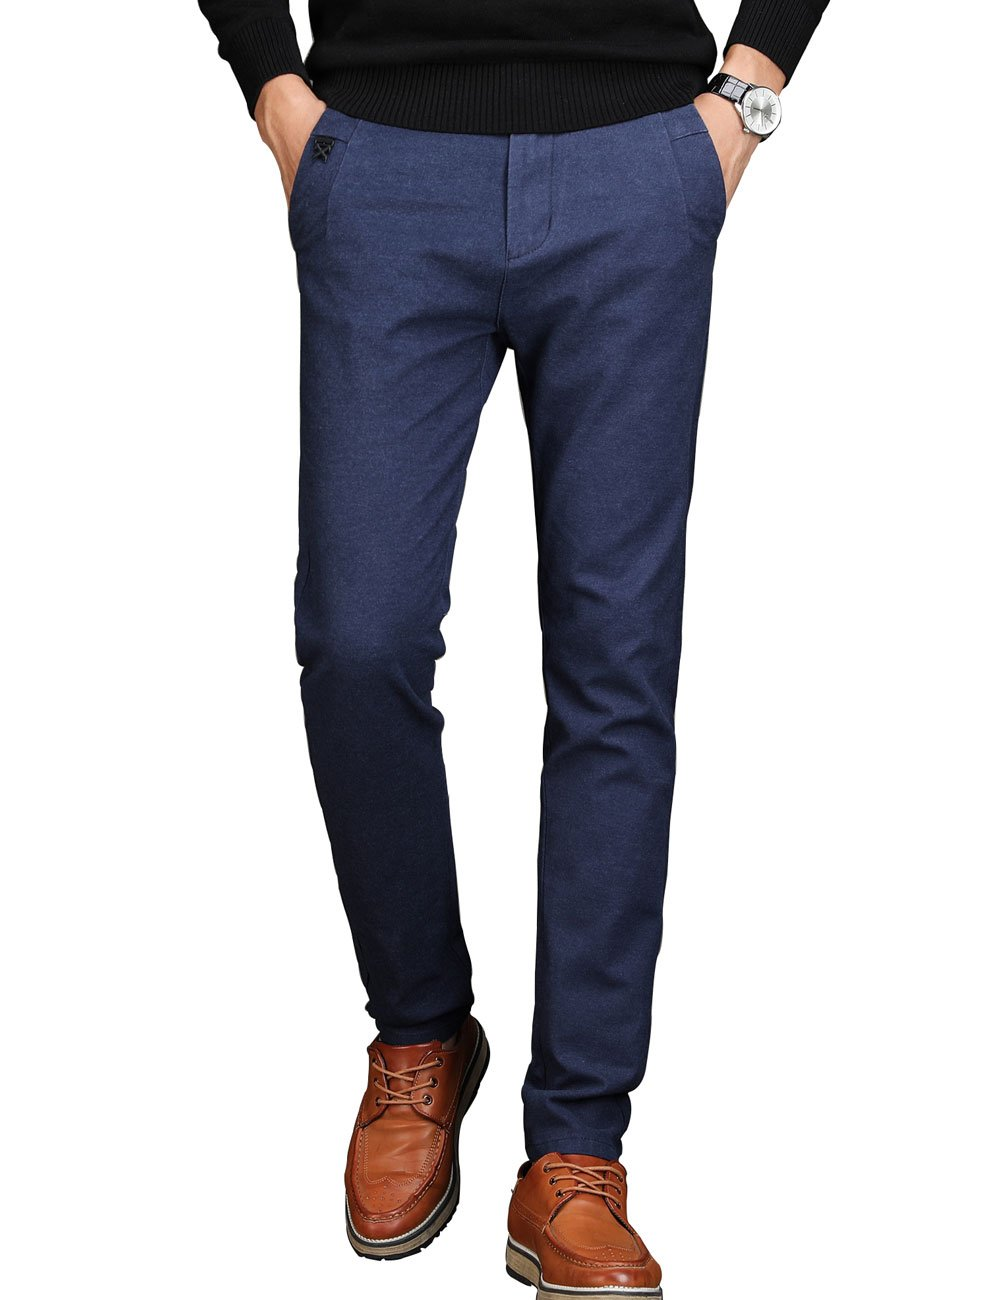 VEGORRS Men's Tapered Slim Fit Wrinkle-Free Casual Stretch Dress Pants,Classic Fit Flat Front Trousers,Blue Pants